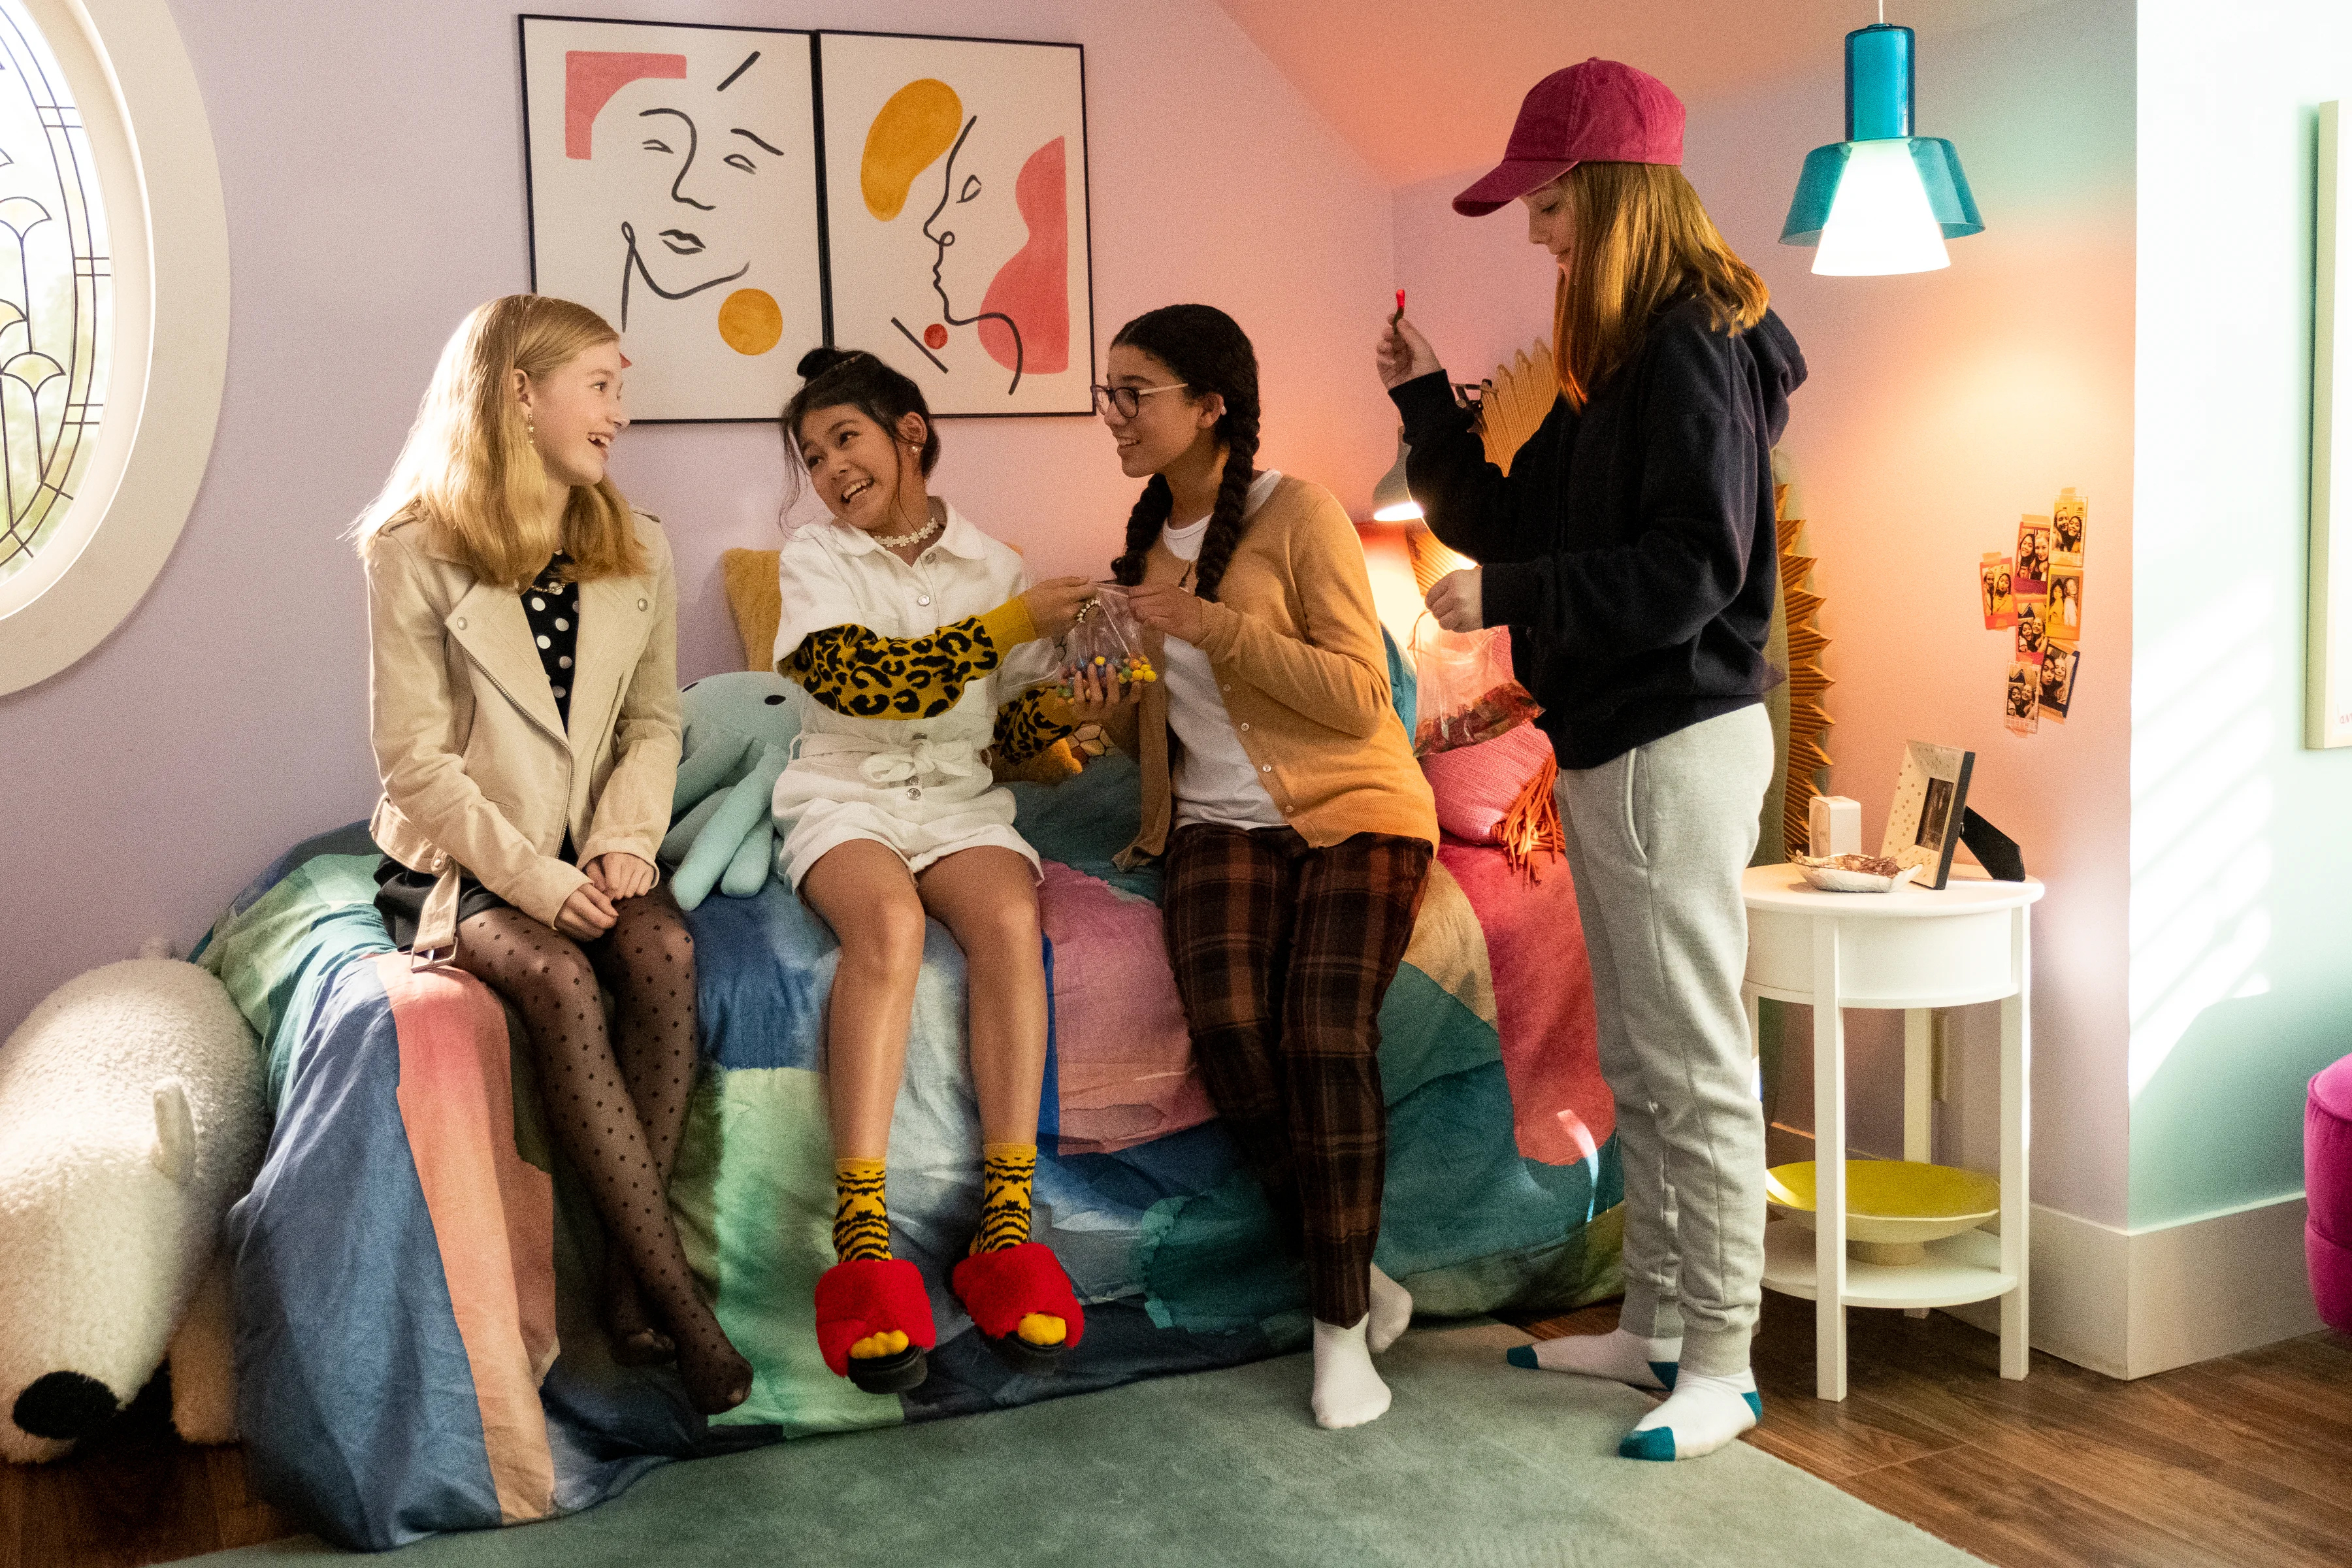 The Baby-Sitters Club - Season 1 Still - Stacey, Claudia, Mary-Anne and Kristh